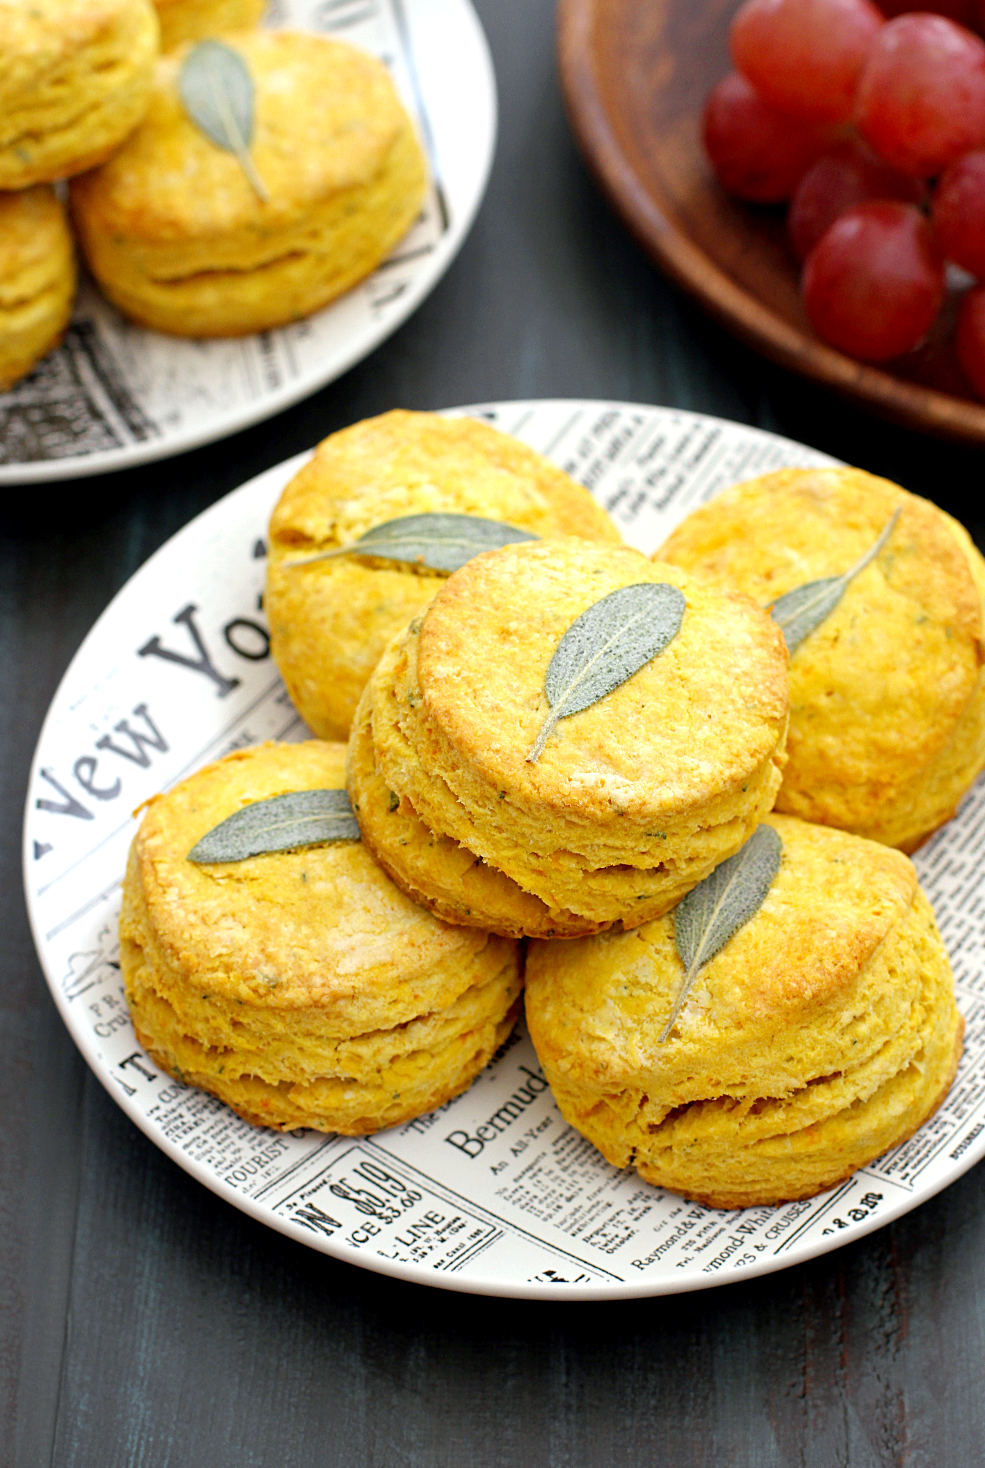 Image of honeynut squash and sage biscuits.